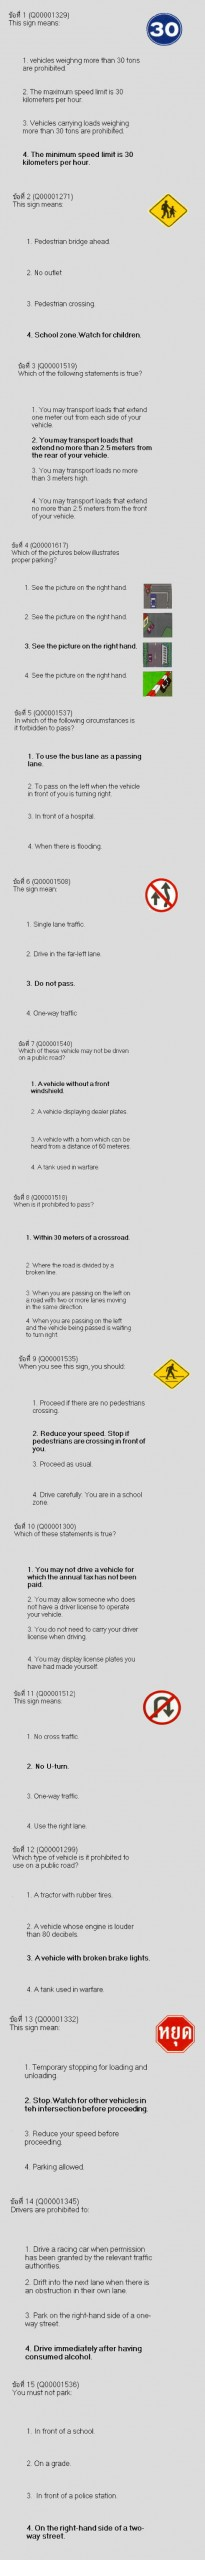 Drivers License Exam Driving Test